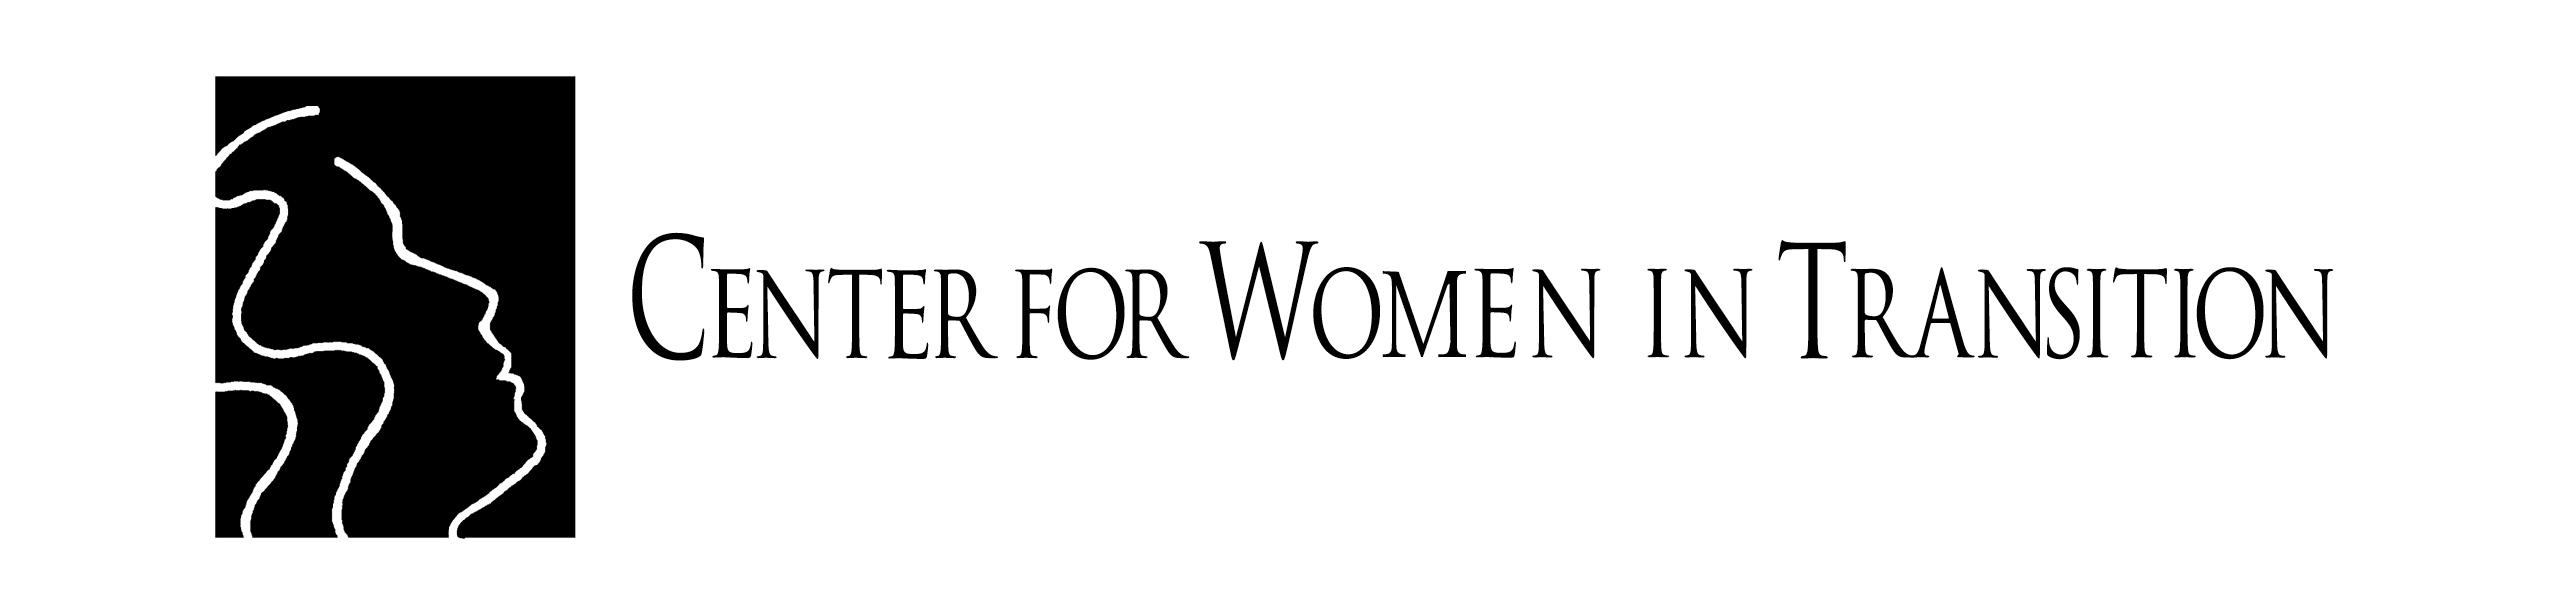 Center for Women in Transition image 1